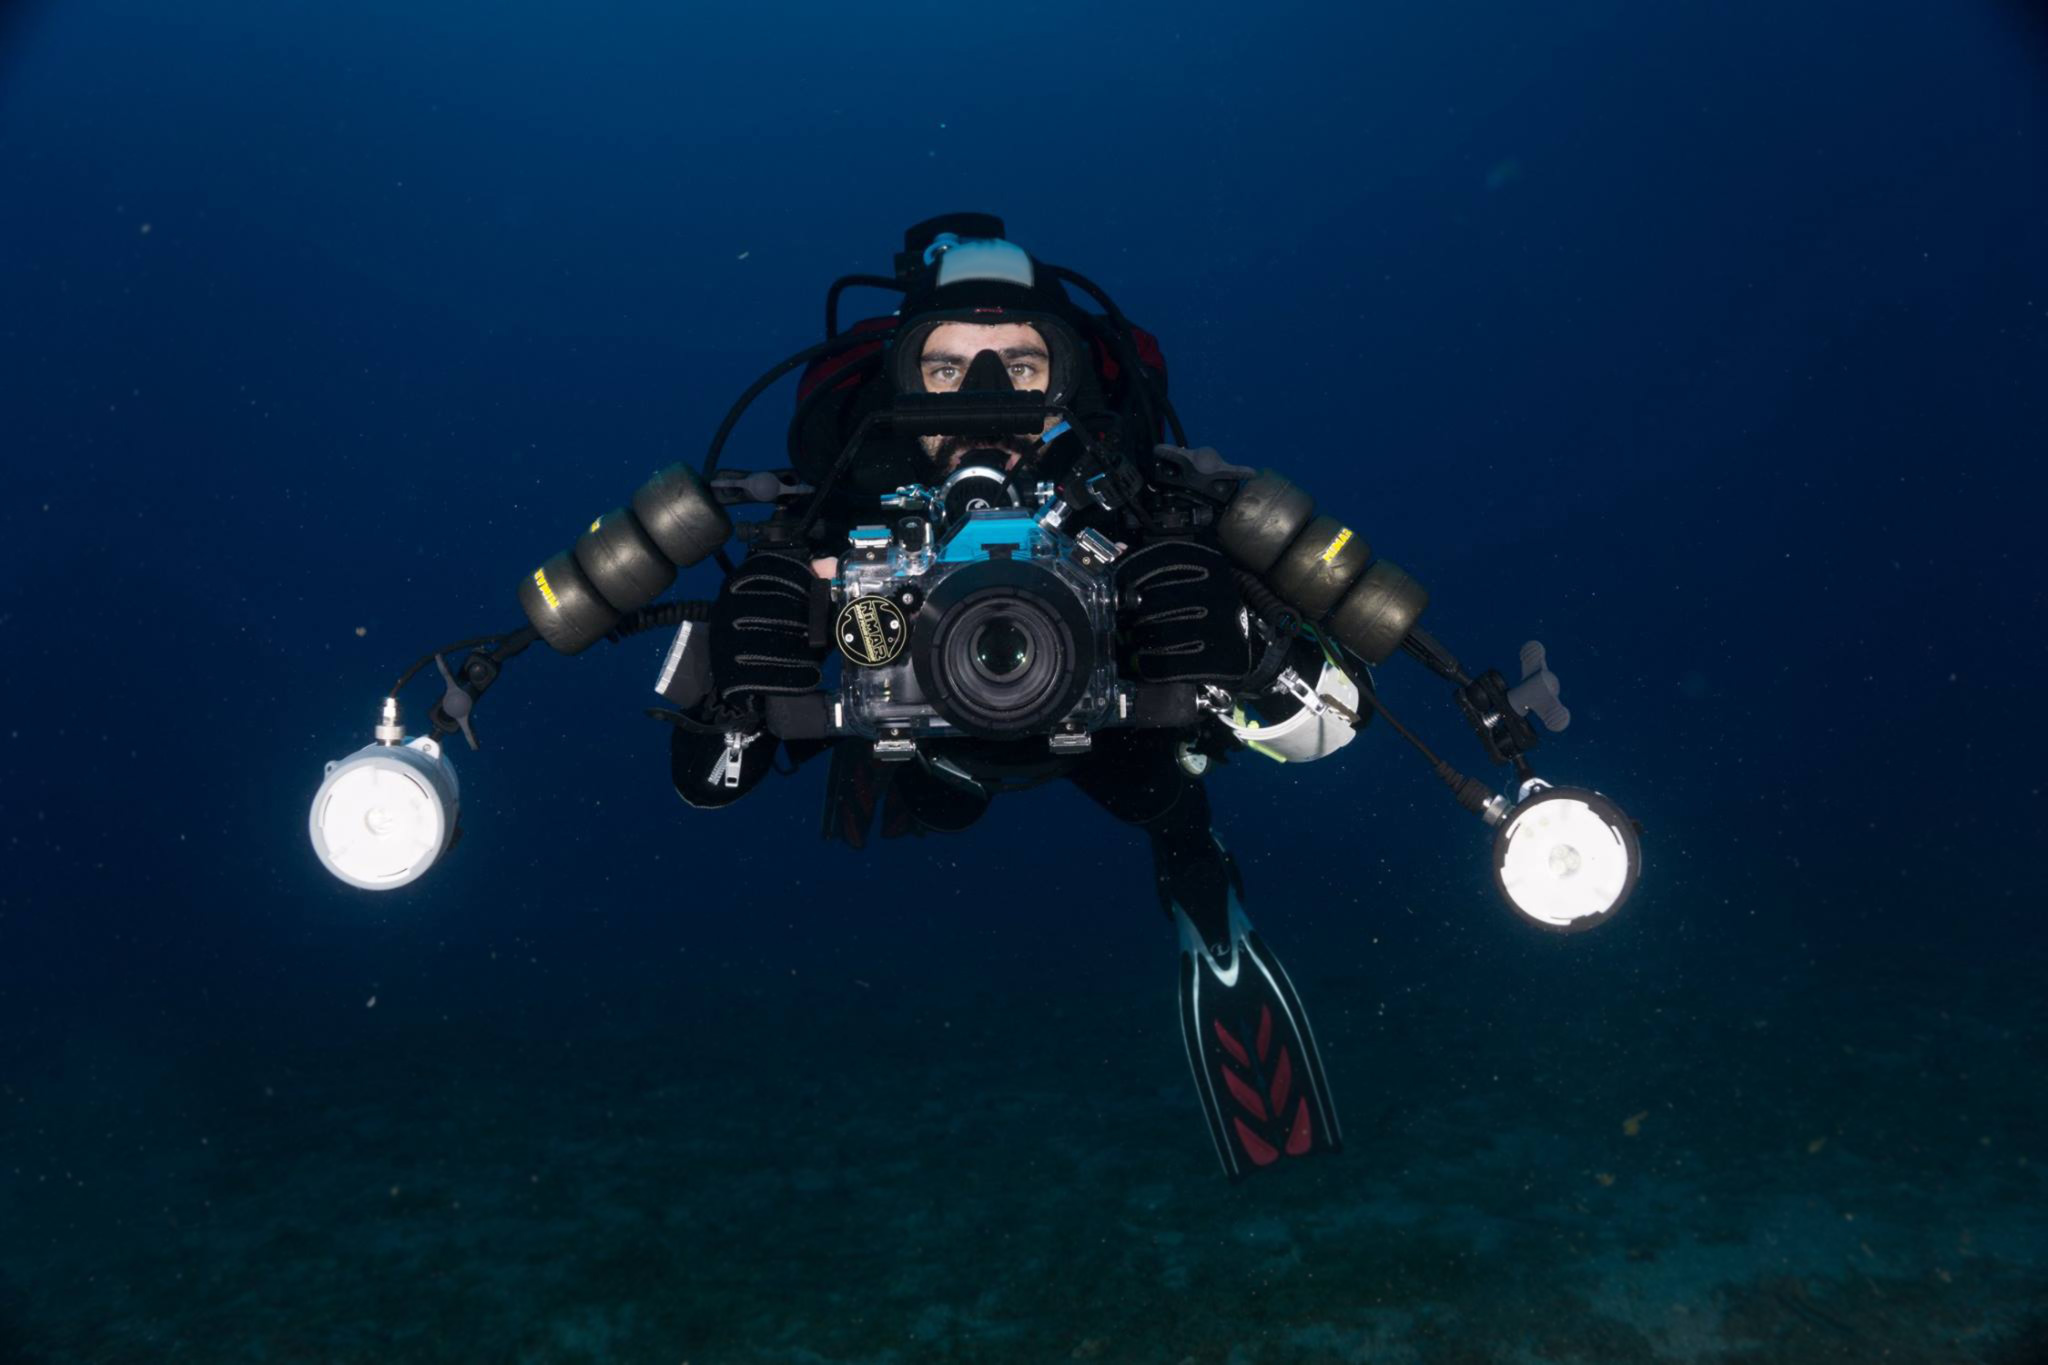 Philippos Marakis with his underwater photography equipment